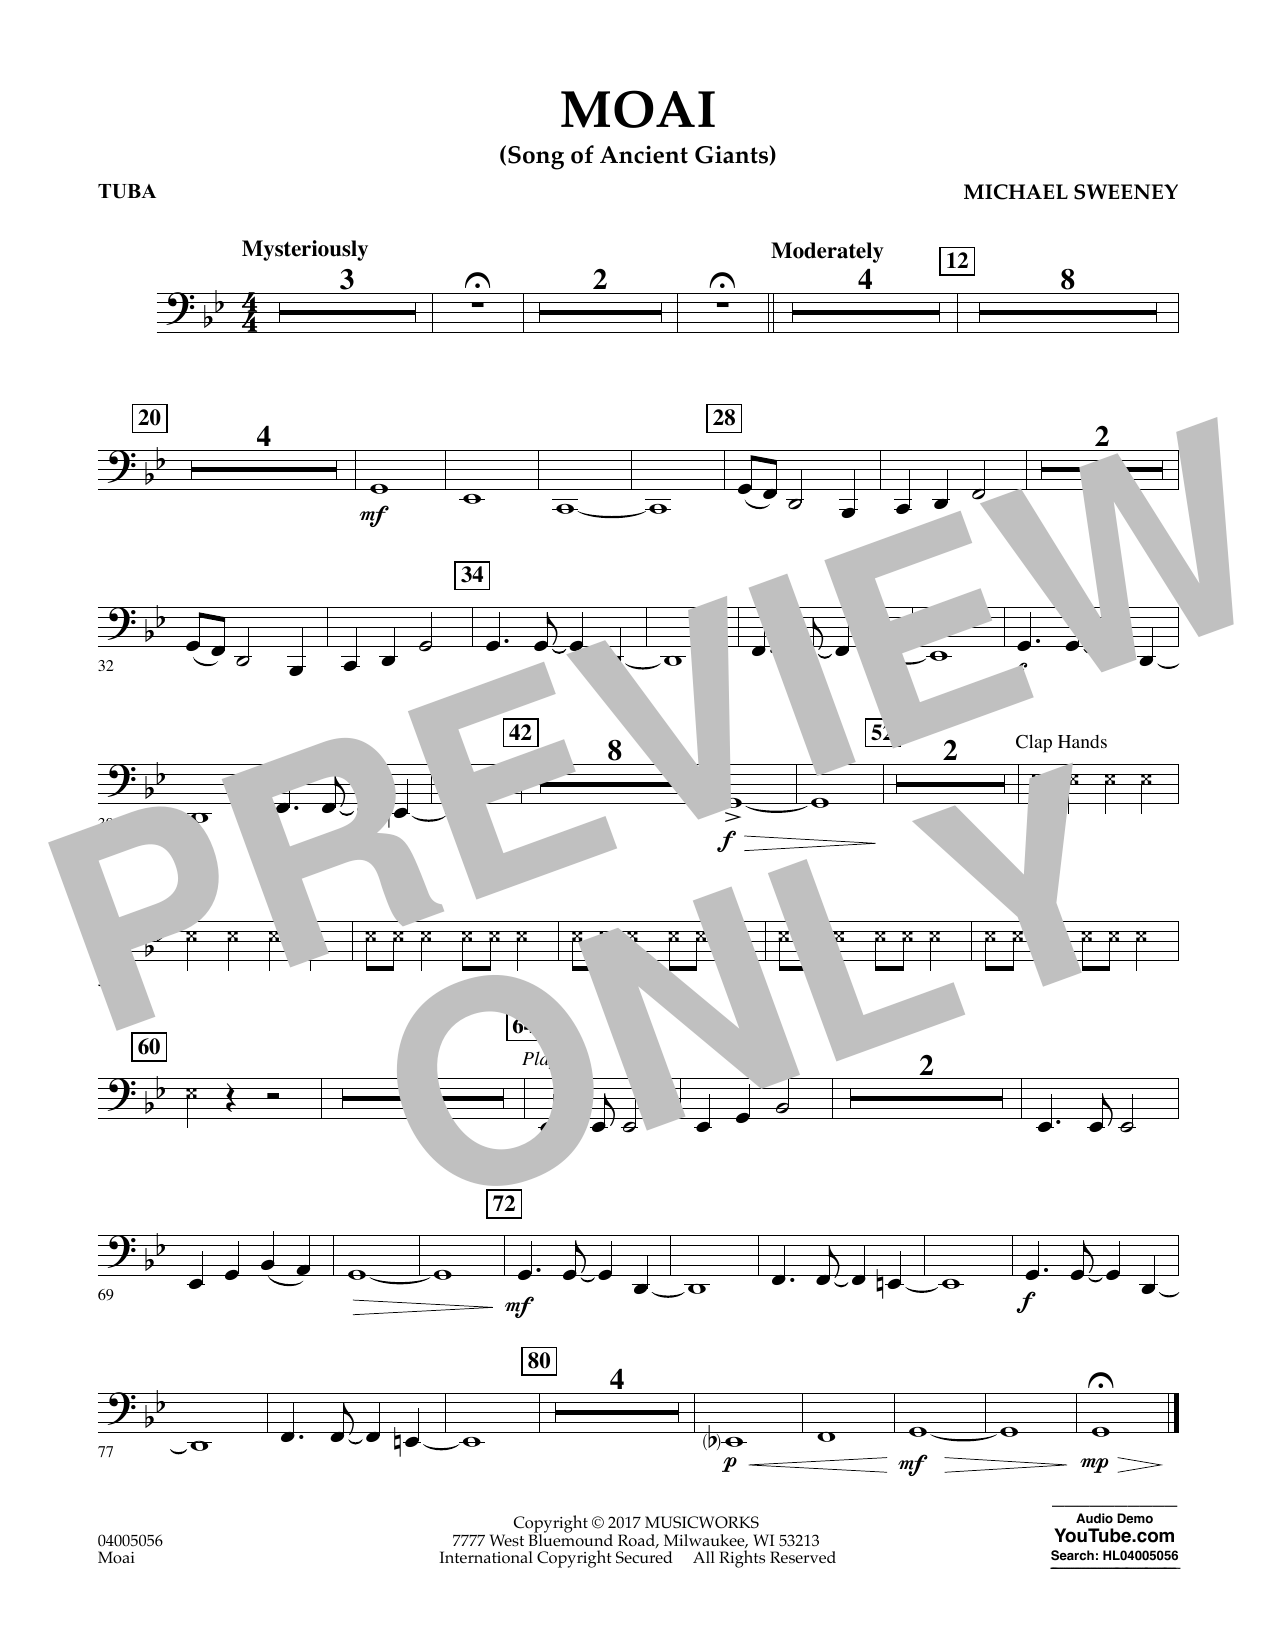 Michael Sweeney Moai (Songs of Ancient Giants) - Tuba sheet music notes and chords. Download Printable PDF.